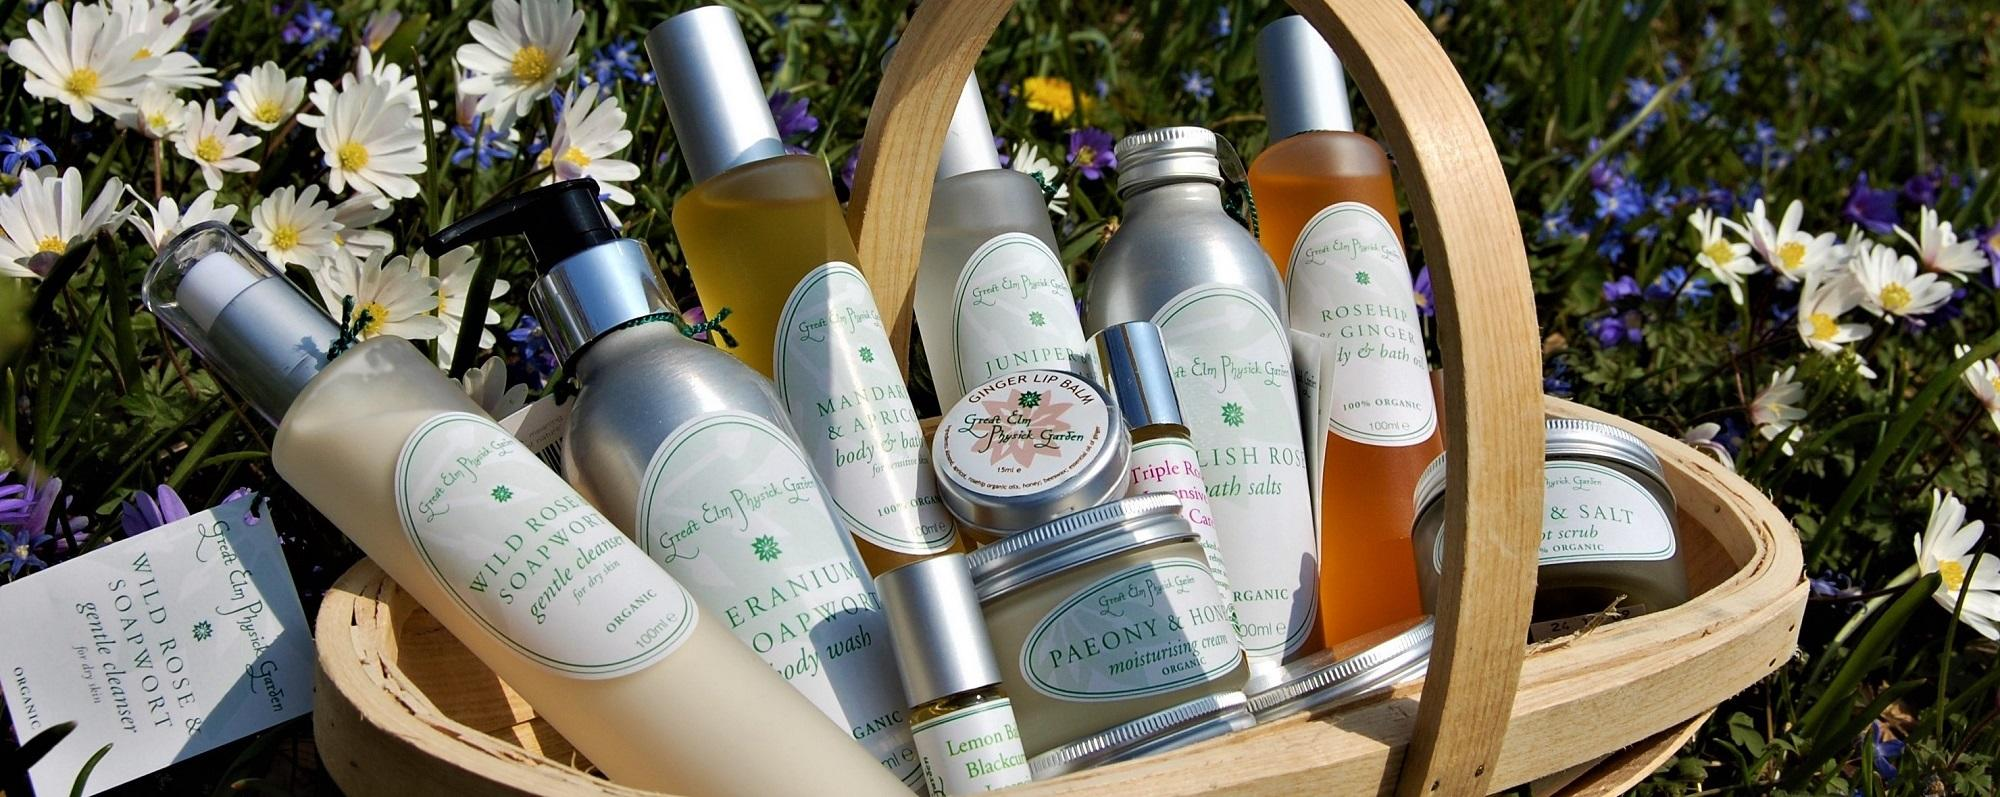 Great Elm Physick Garden organic herbal skincare. Beautifully simple.